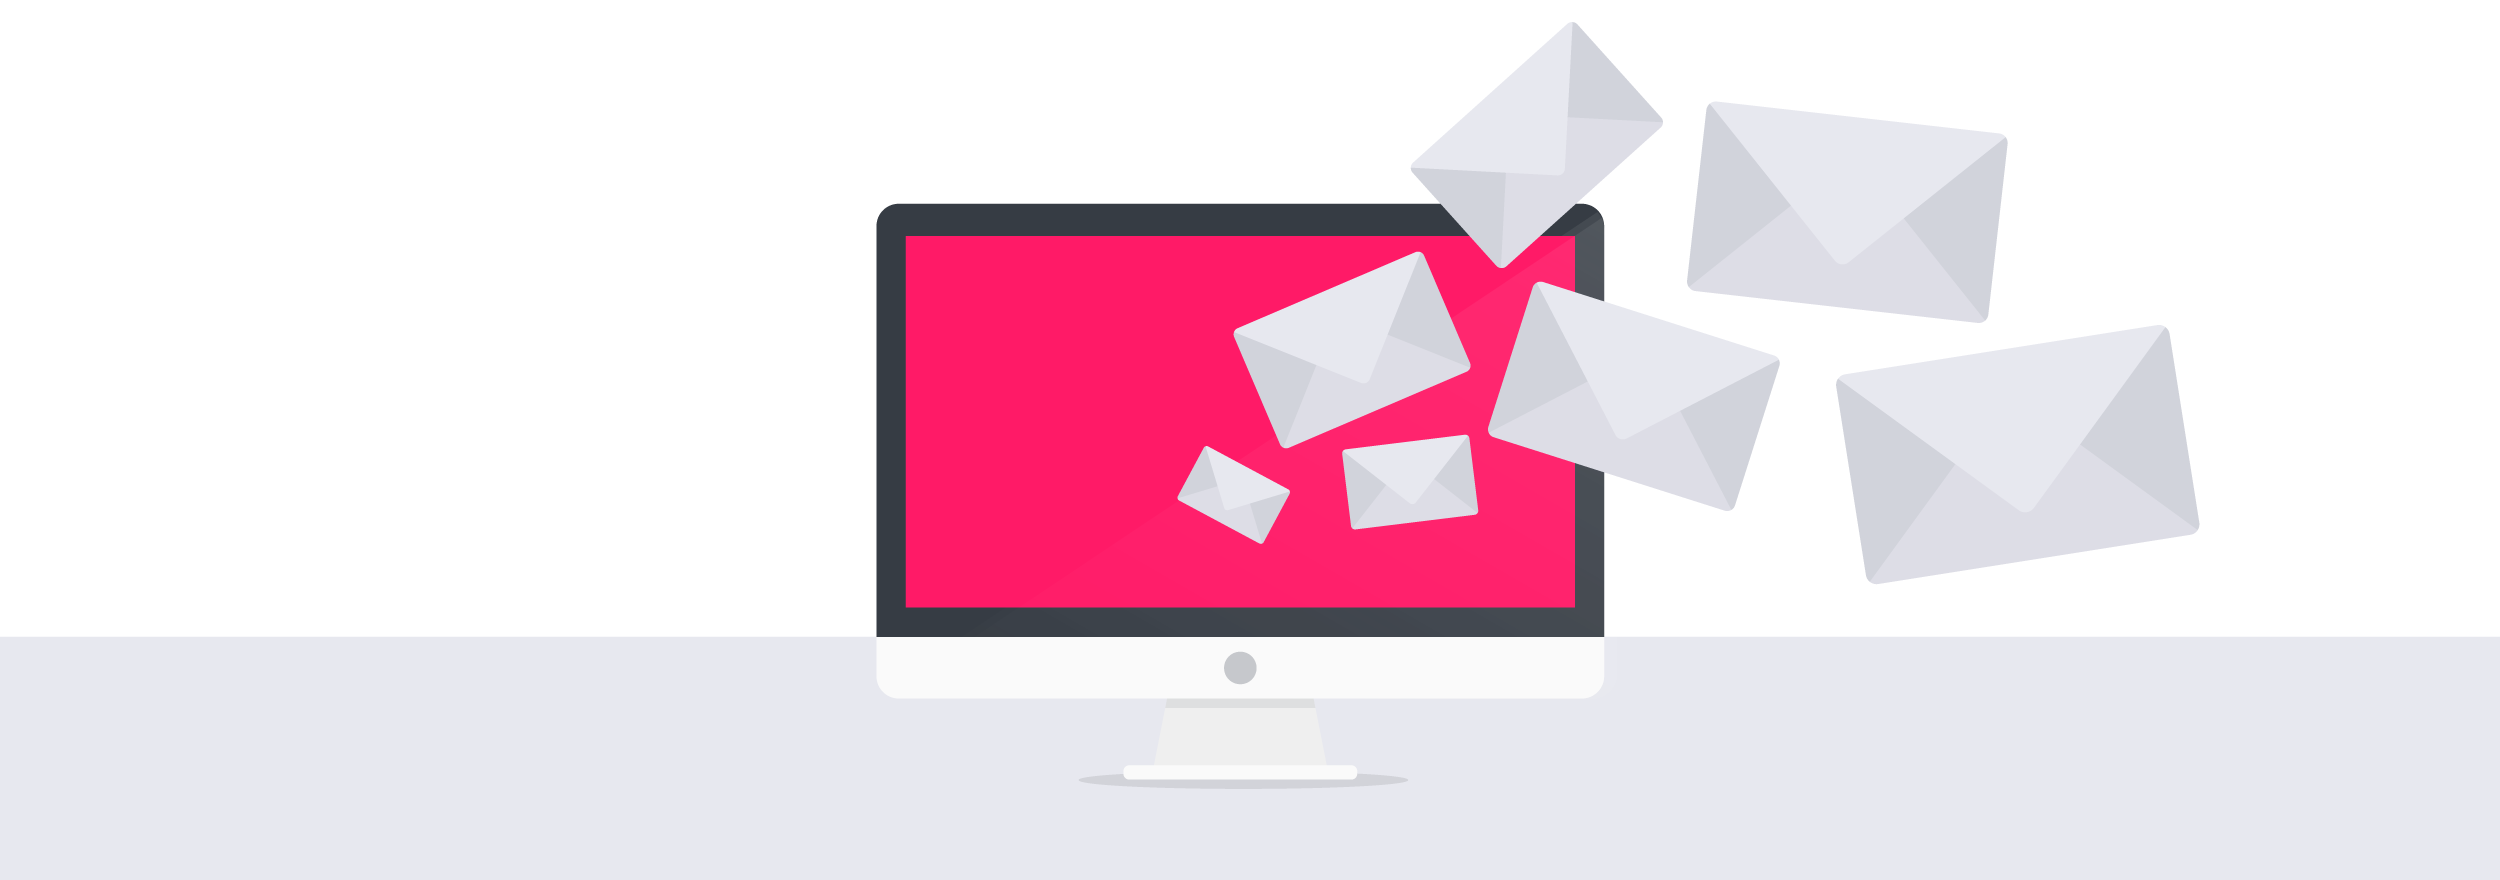 10 Effortless Ways To Grow An Email List